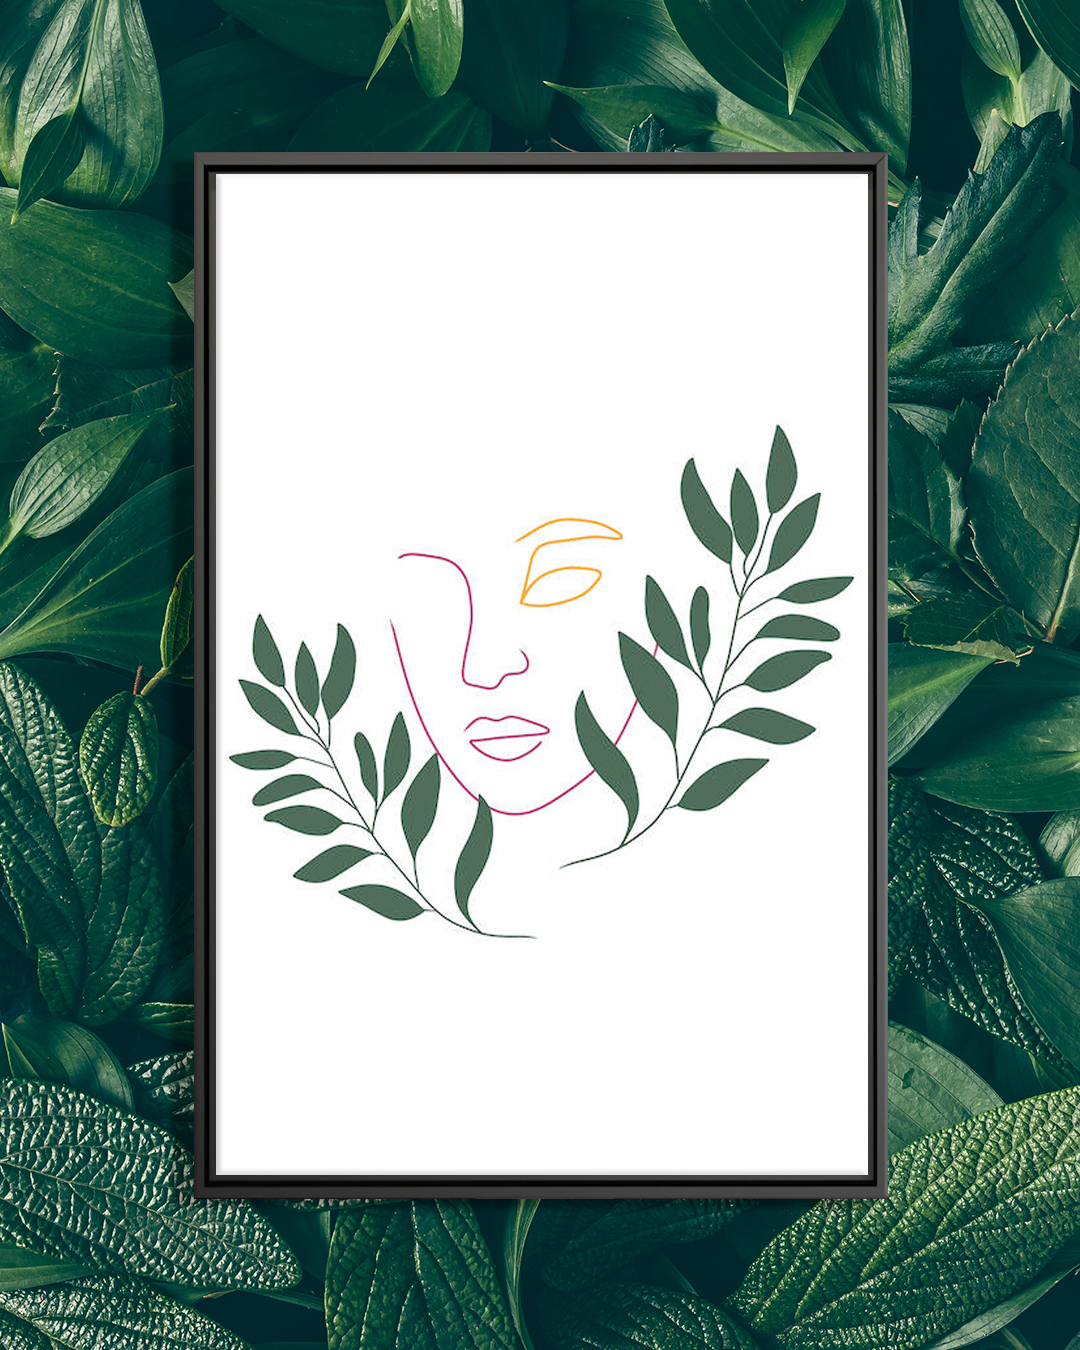 Minimalist line portrait illustration of a female face in yellow and pink with green leaves around it